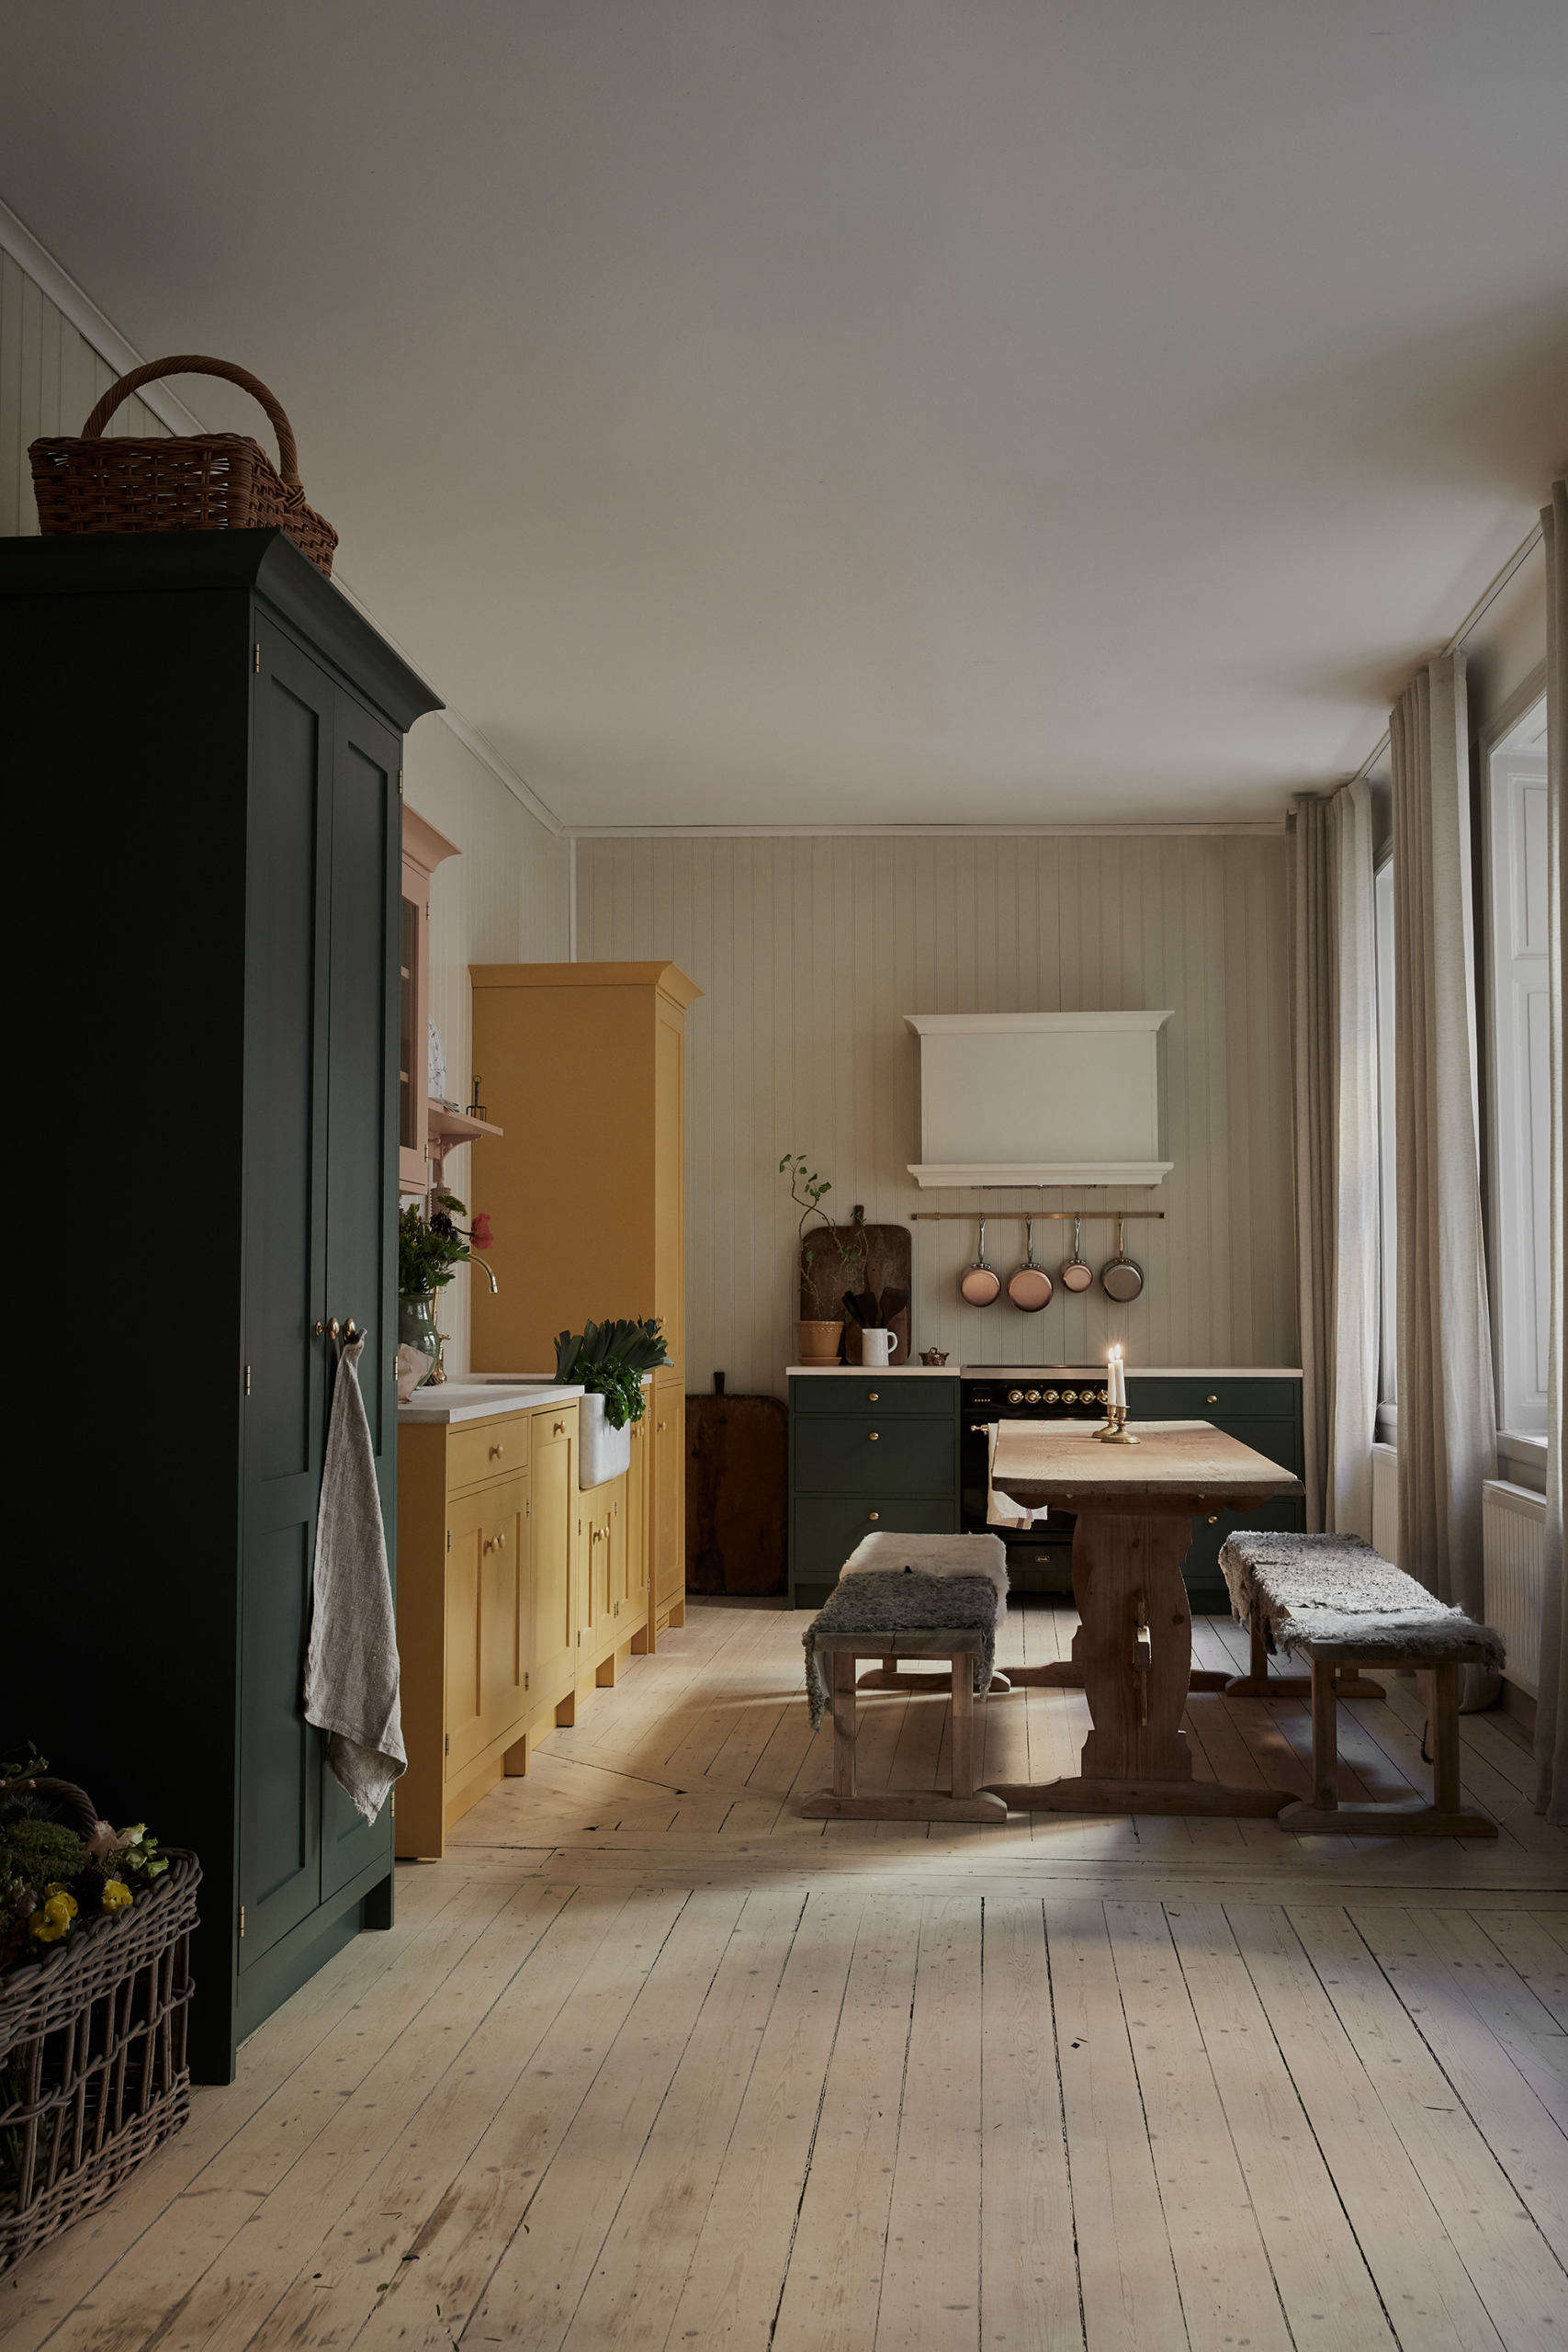 Kitchen of the Week: A Pastel Kitchen Inspired by Swedish Artist Carl Larsson - Remodelista